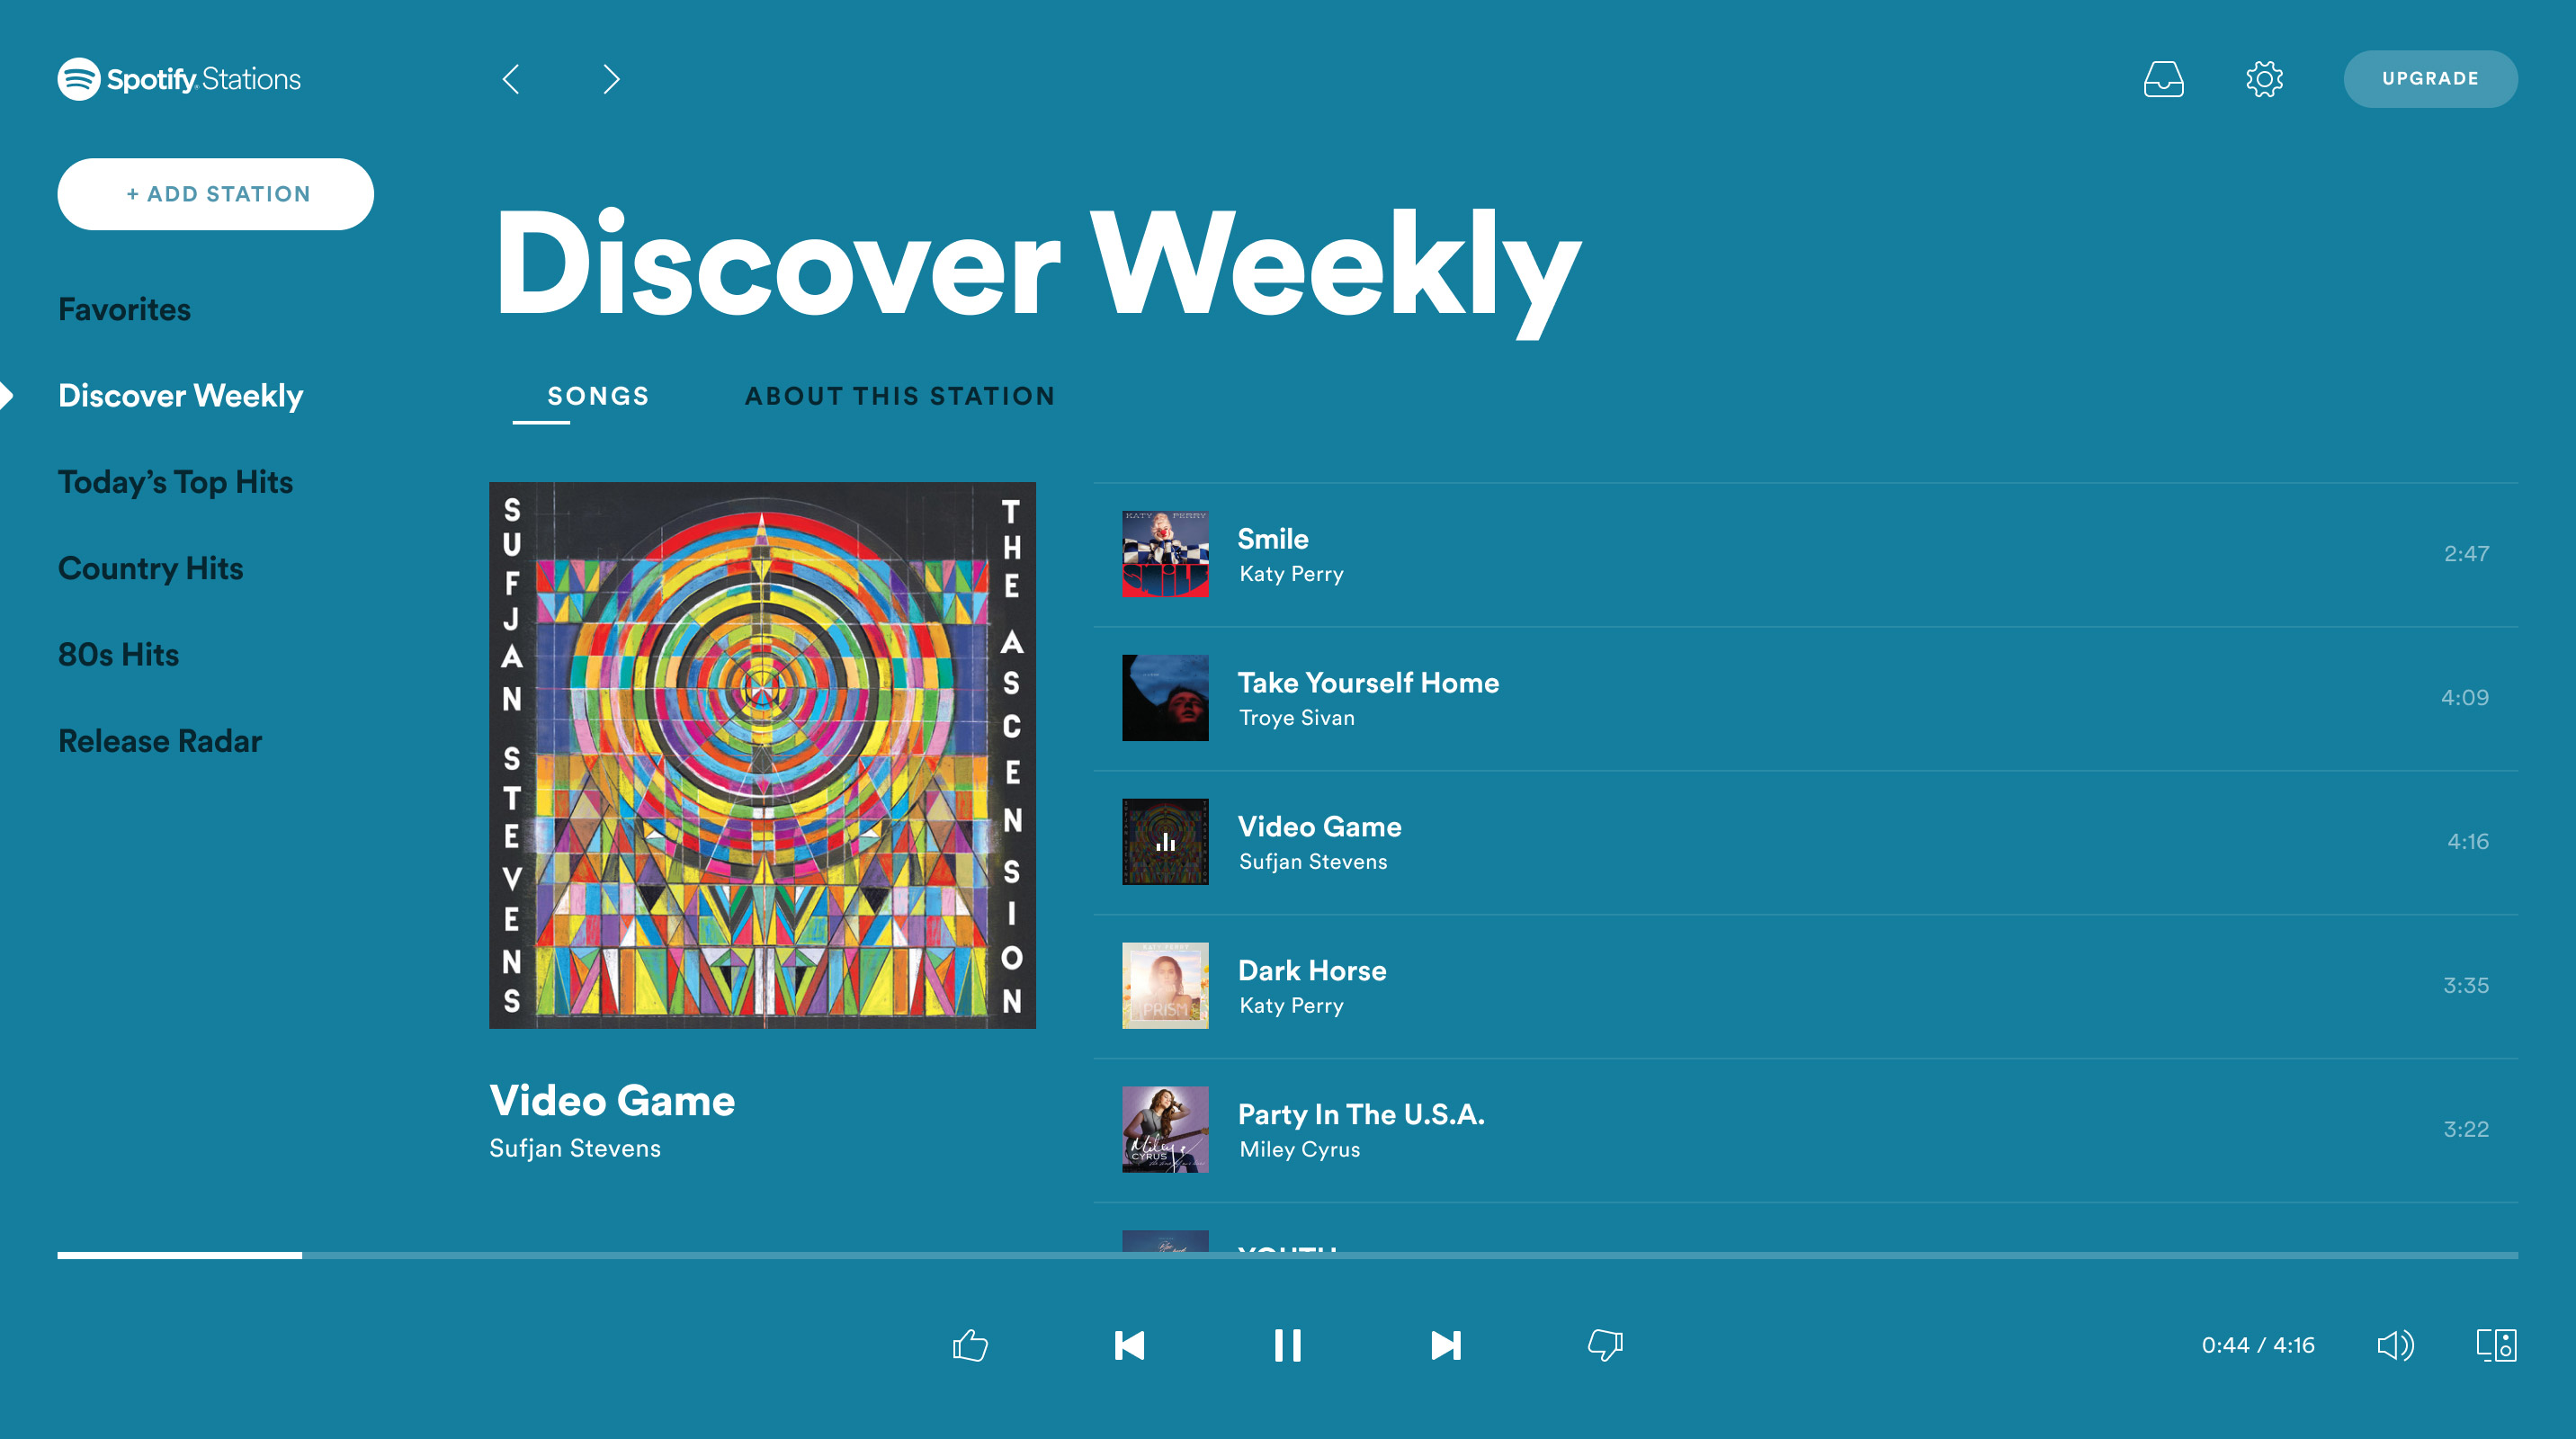 Get the full Stations experience on a bigger screen with the Web Player.